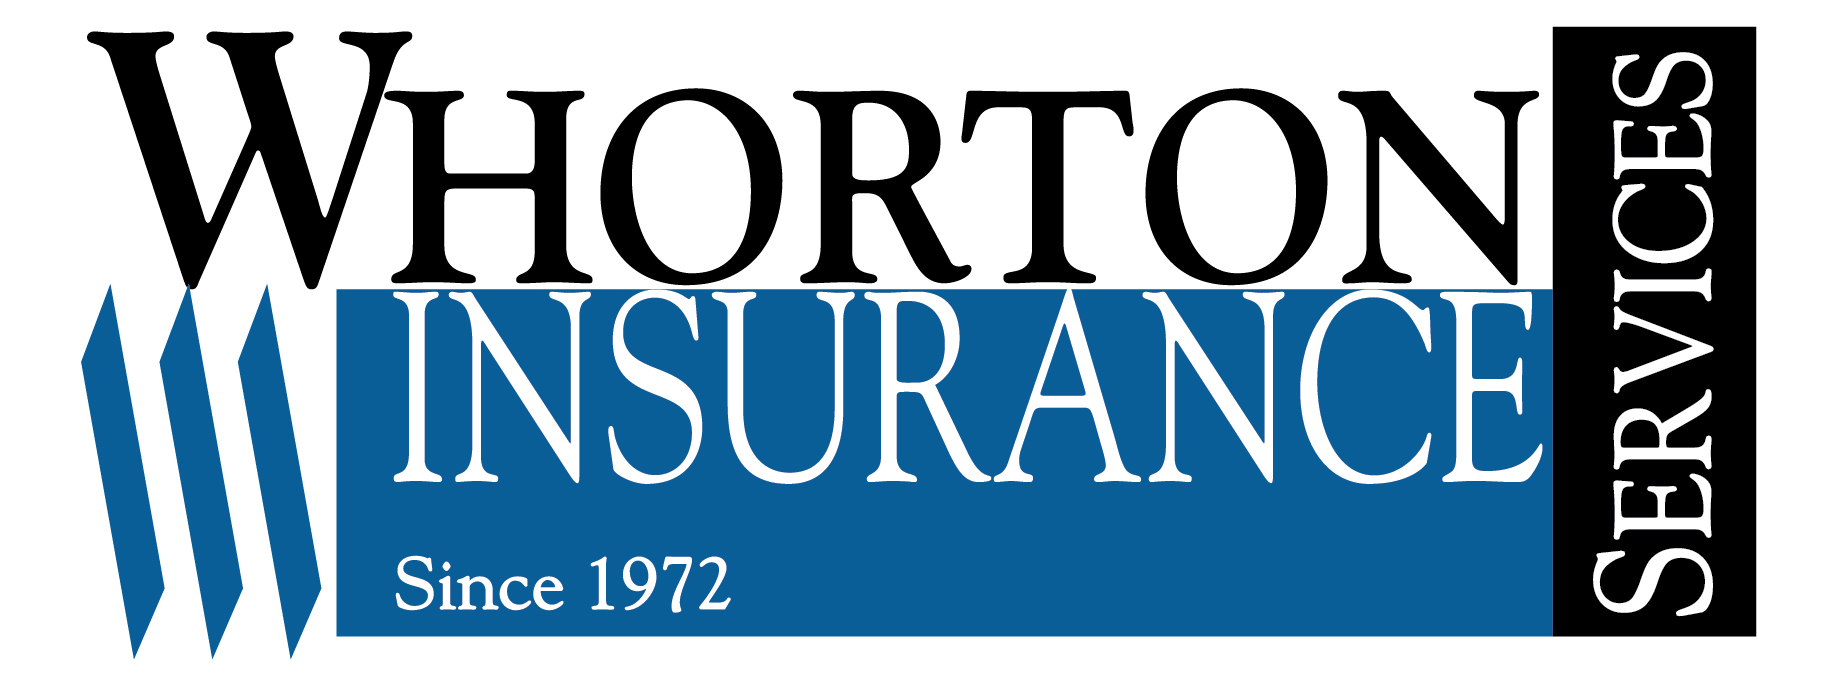 Whorton Insurance Retina Logo